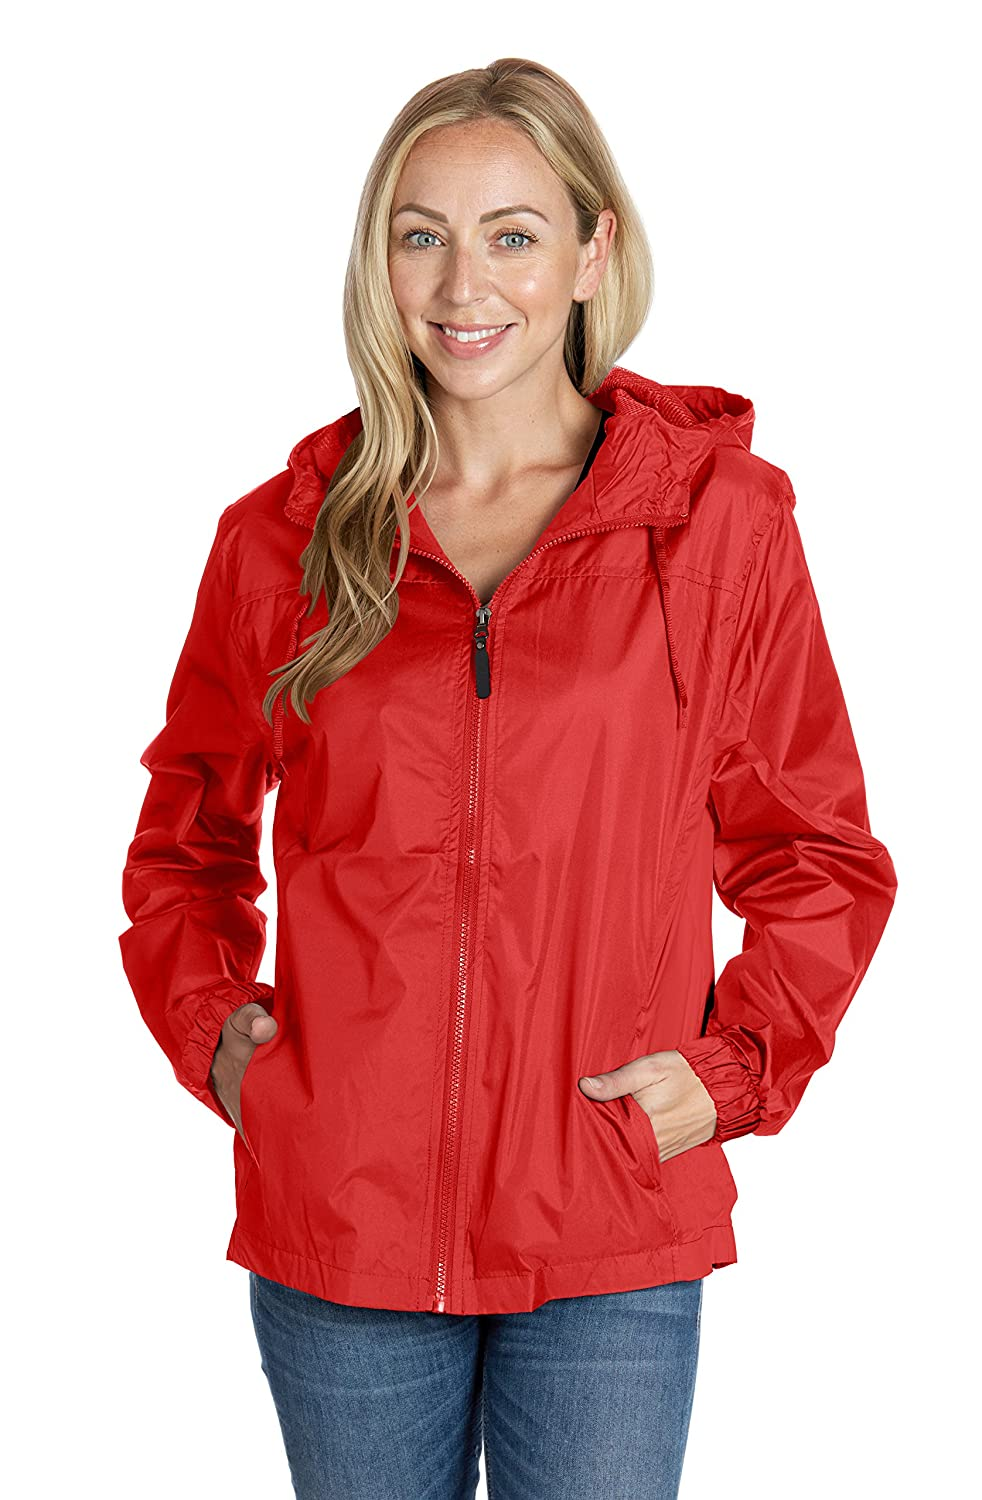 Ladies Hooded Wind Resistant/Water Repellent Windbreaker Jacket Equipment De Sport USA